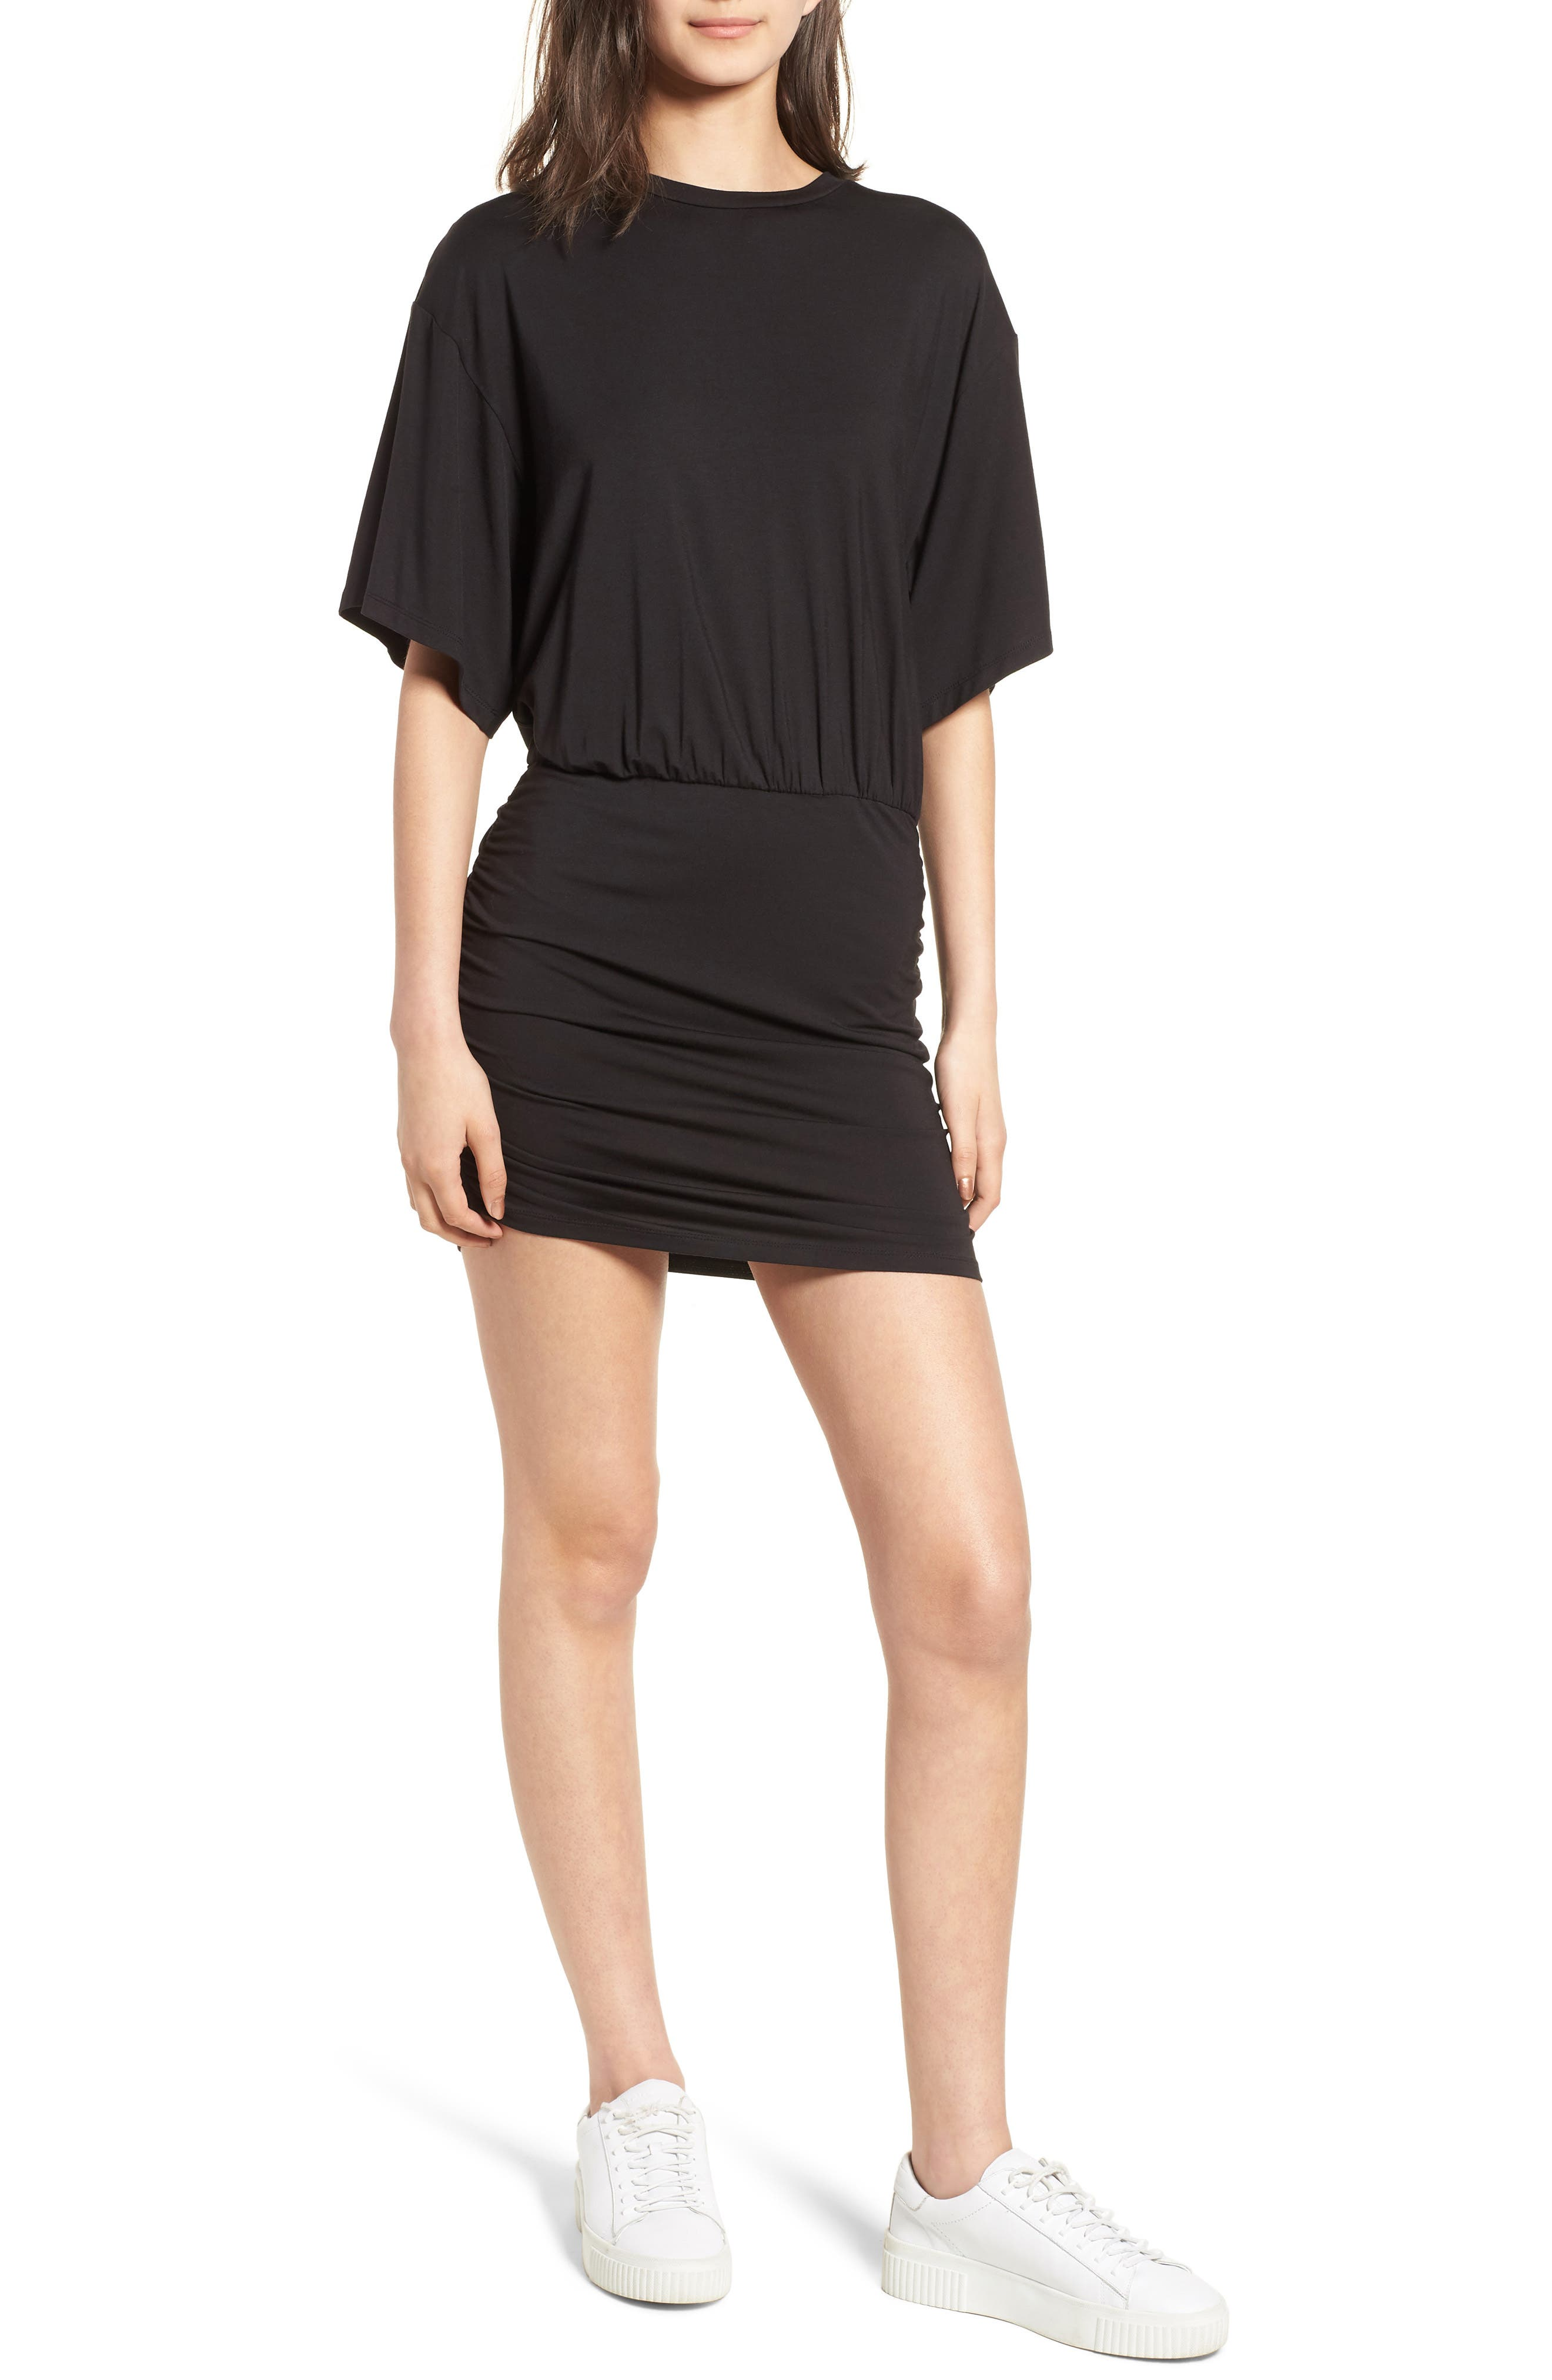 KENDALL + KYLIE Open Back T-Shirt Dress, Main, color, 001